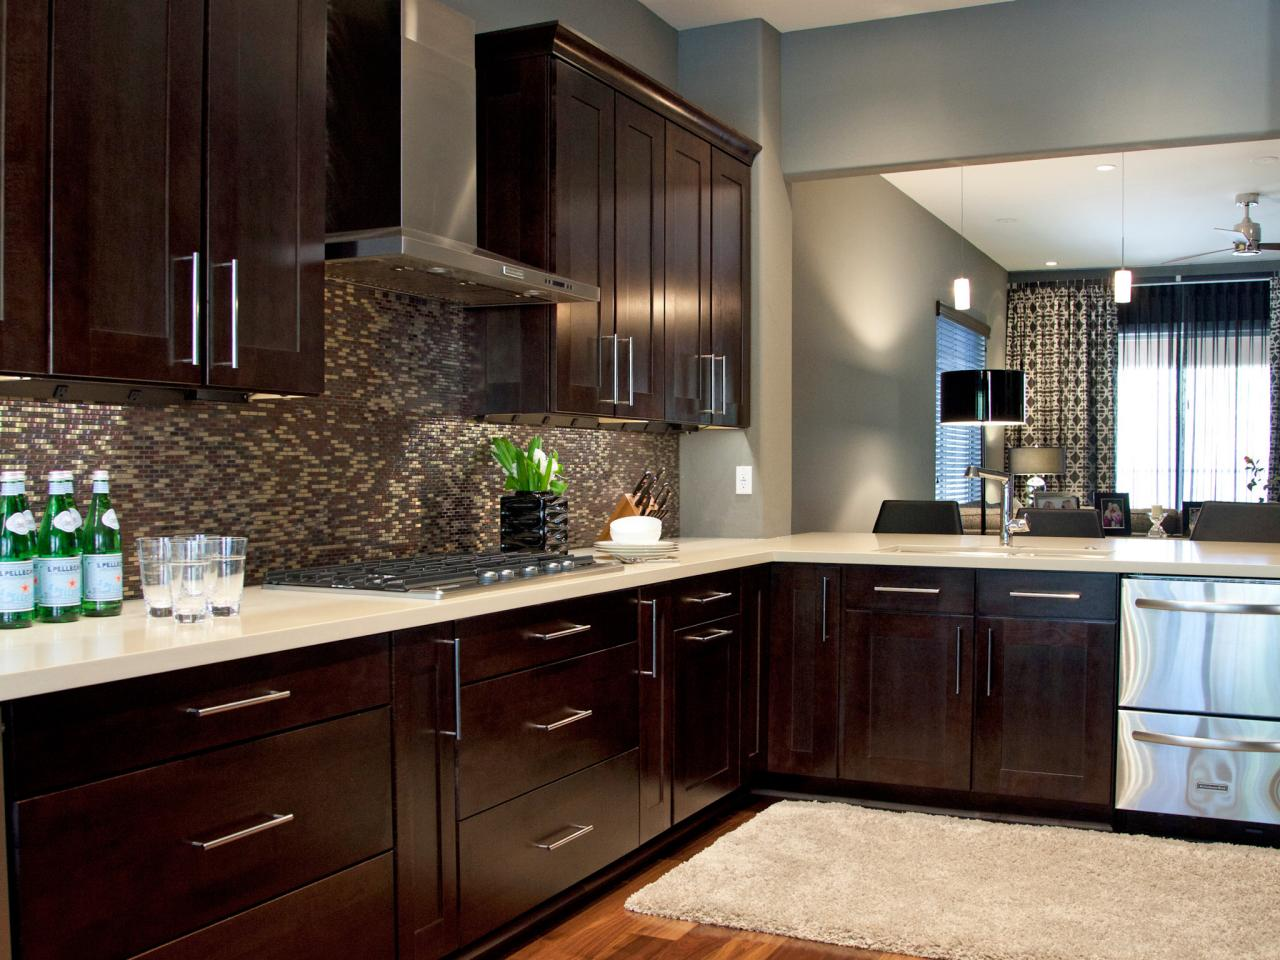 espresso kitchen cabinets pictures ideas tips from. Black Bedroom Furniture Sets. Home Design Ideas